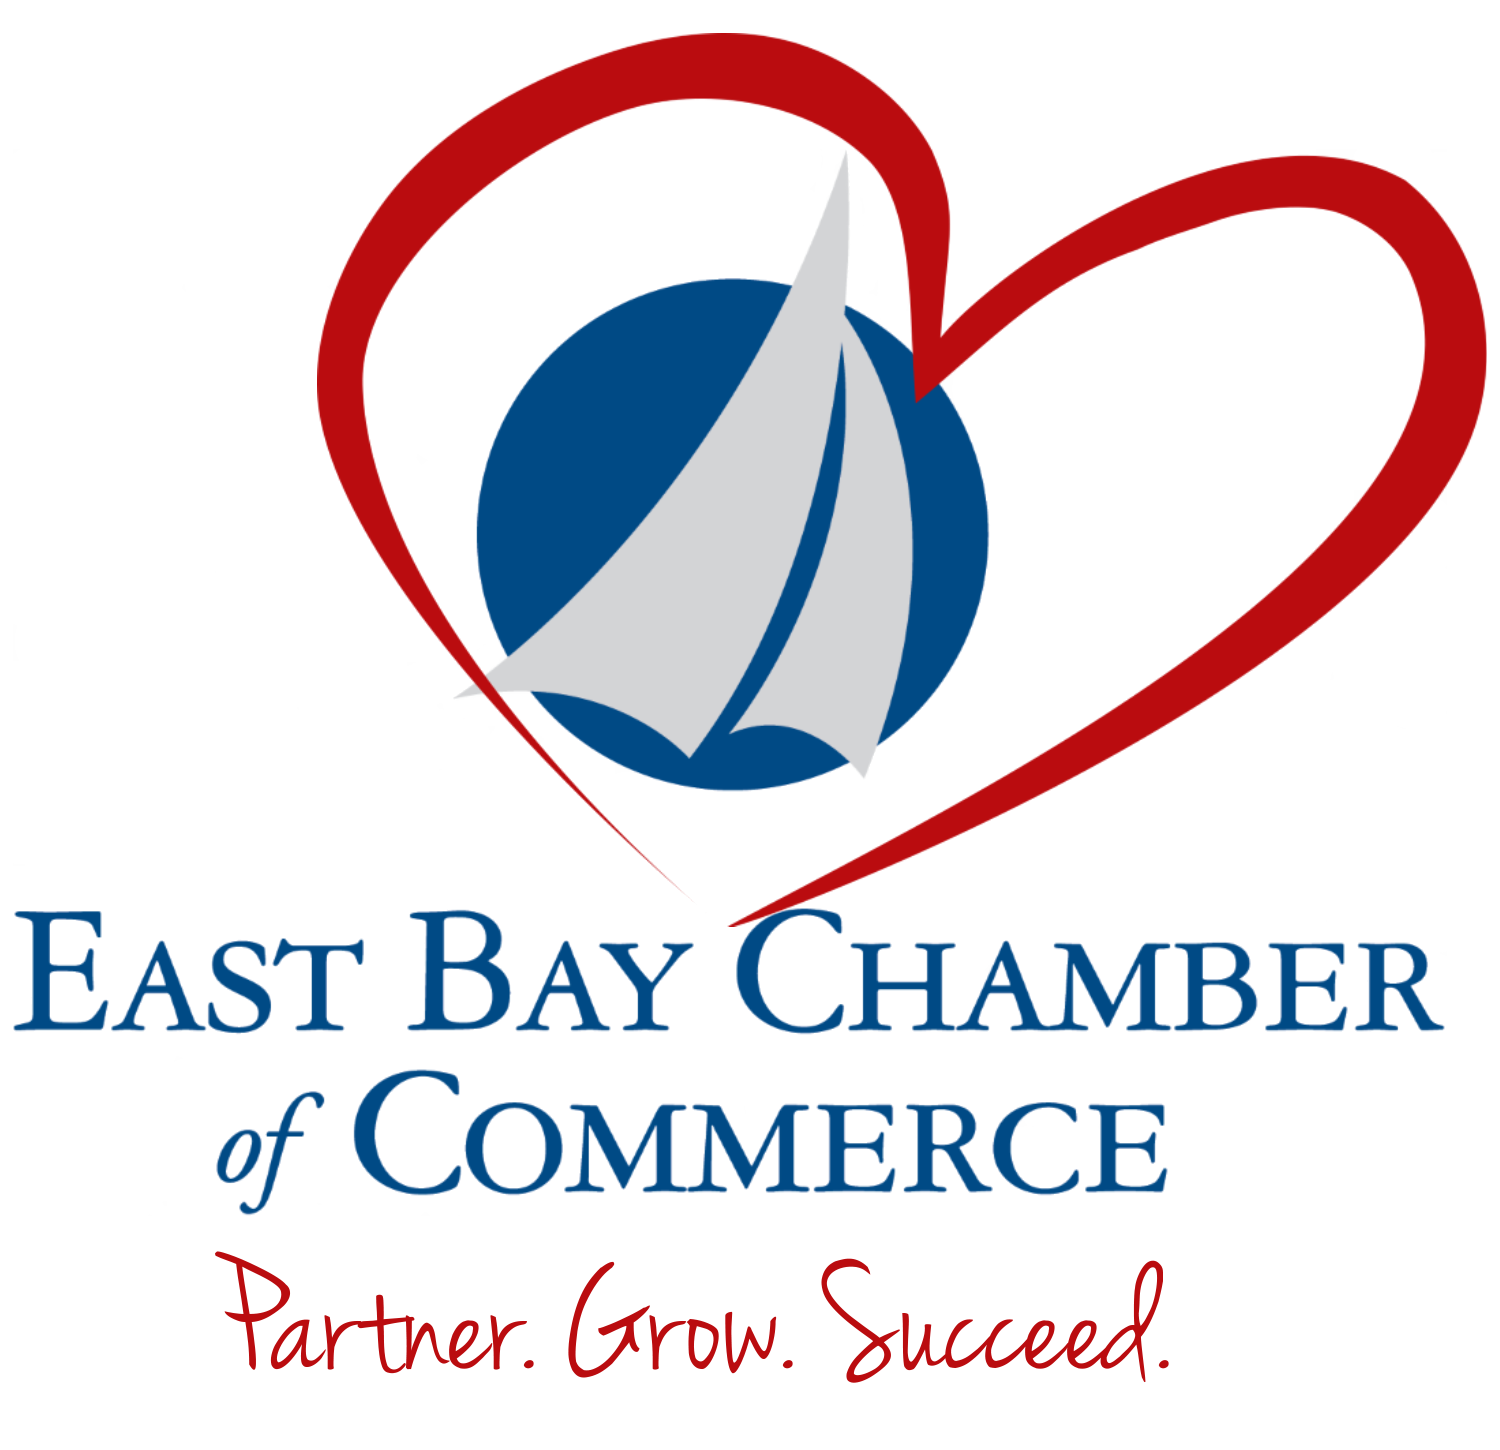 East Bay Chamber of Commerce